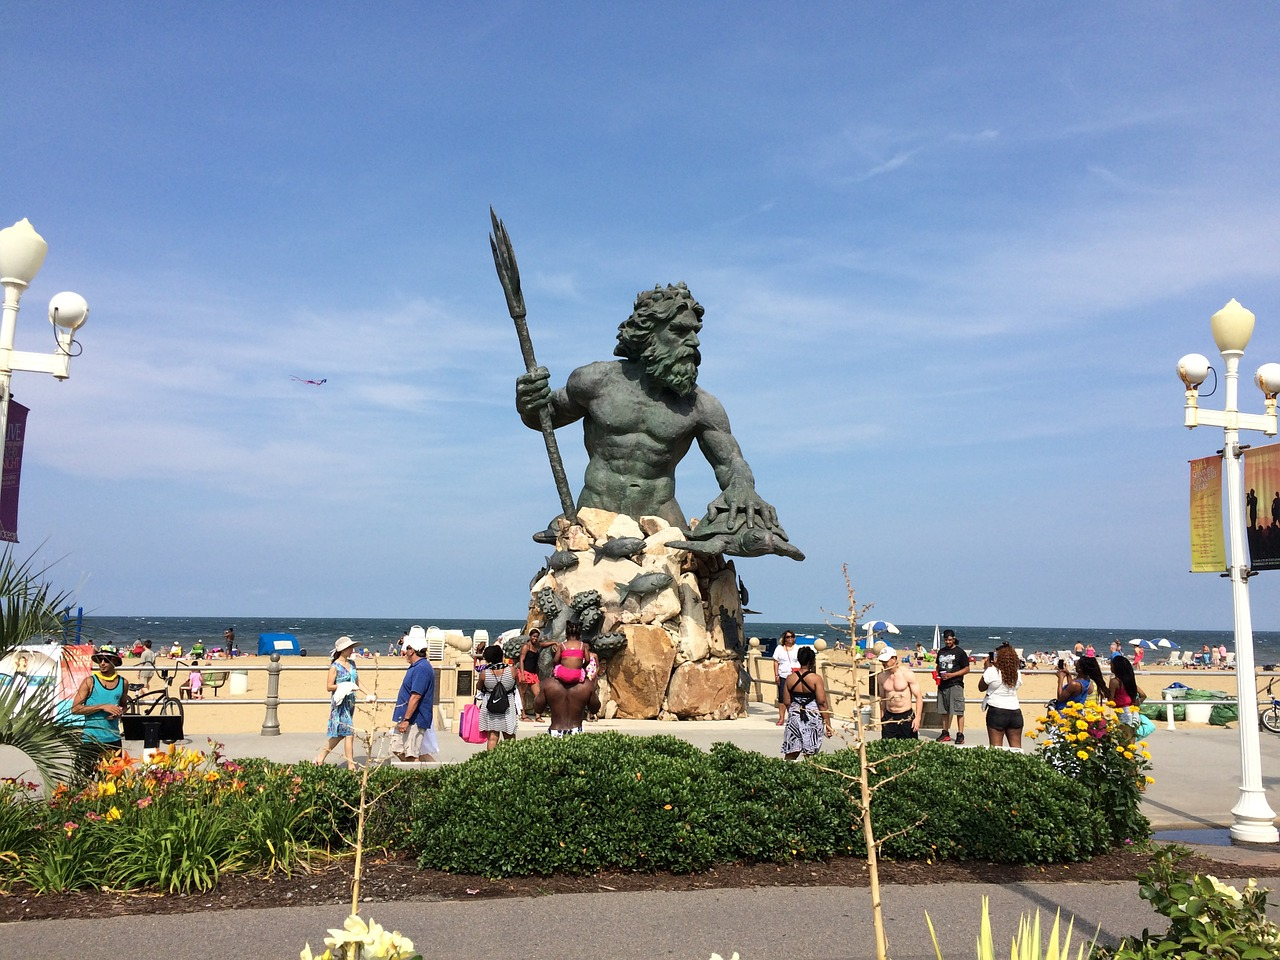 statue,virginia beach,monument,neptune,tourists,sea walk,beach,sea,summer,free pictures, free photos, free images, royalty free, free illustrations